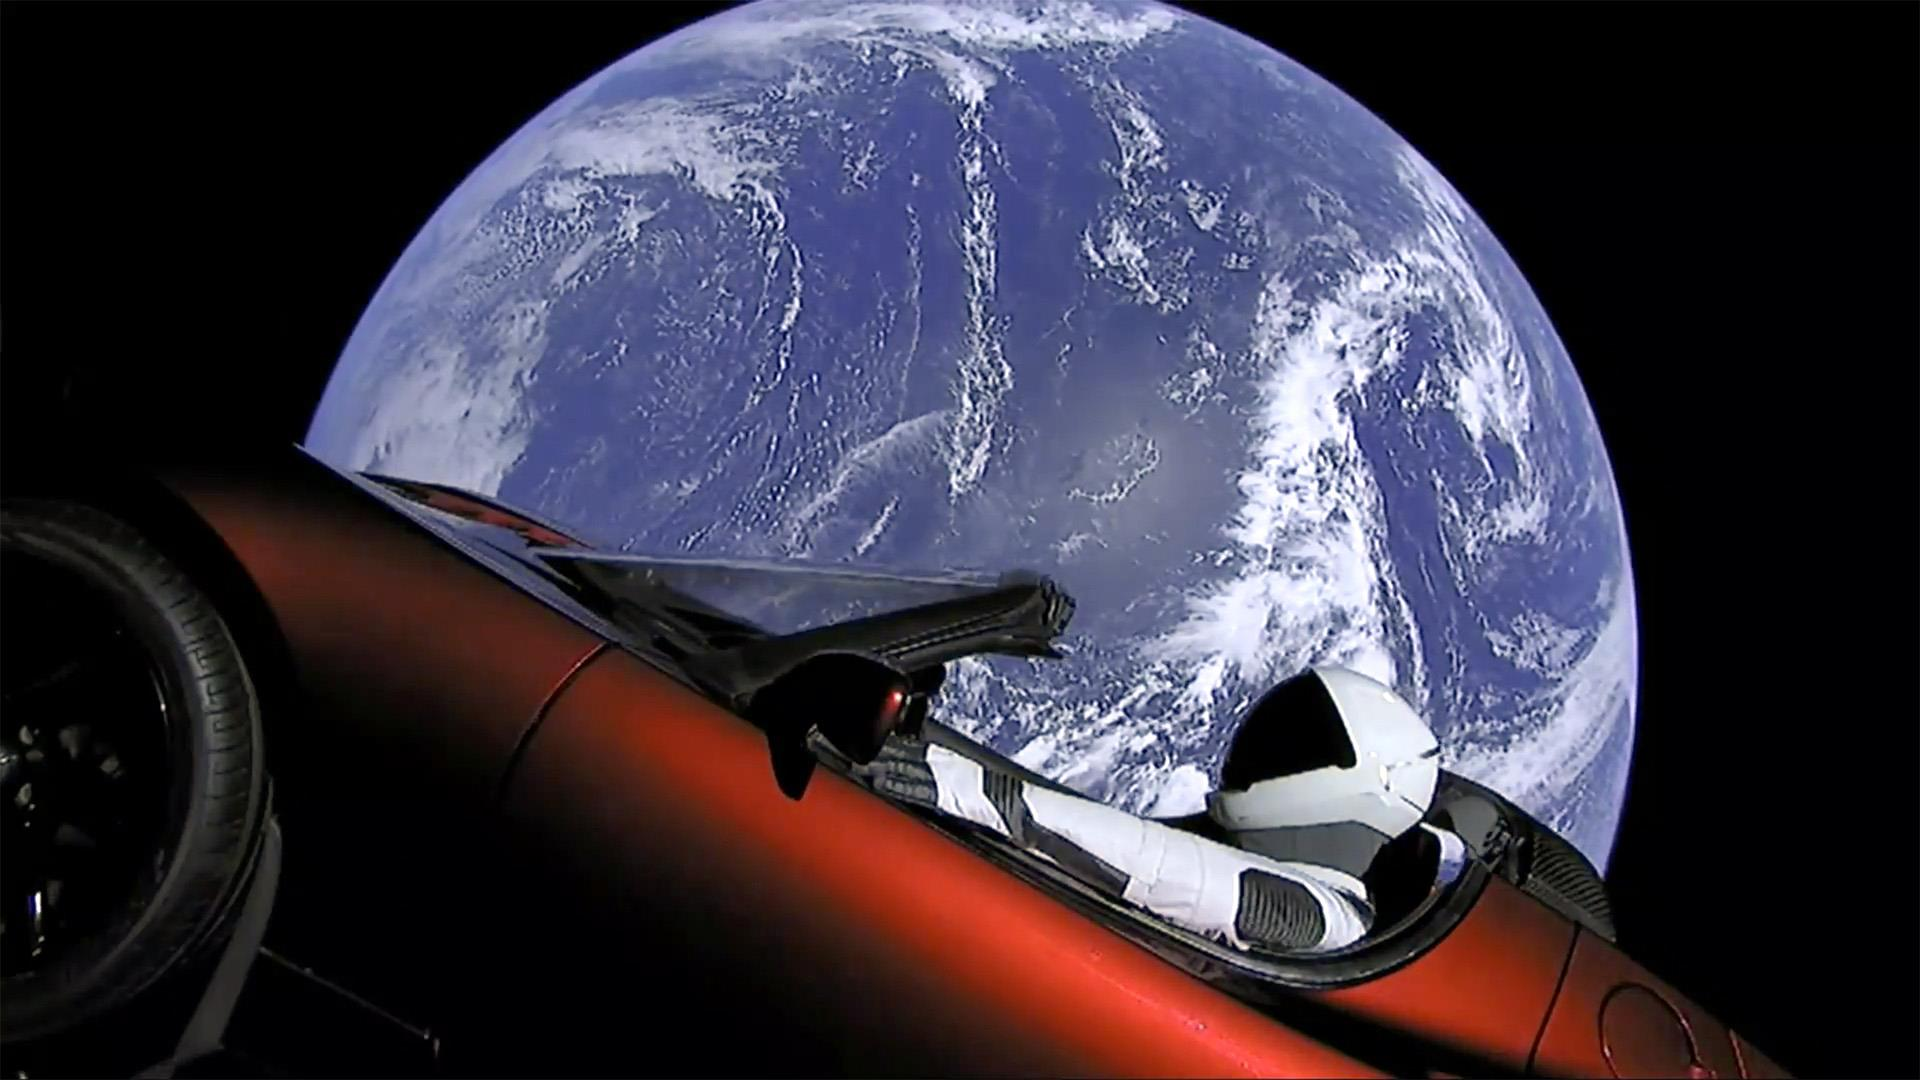 Now you can track where Elon Musk's Tesla is in space  | The